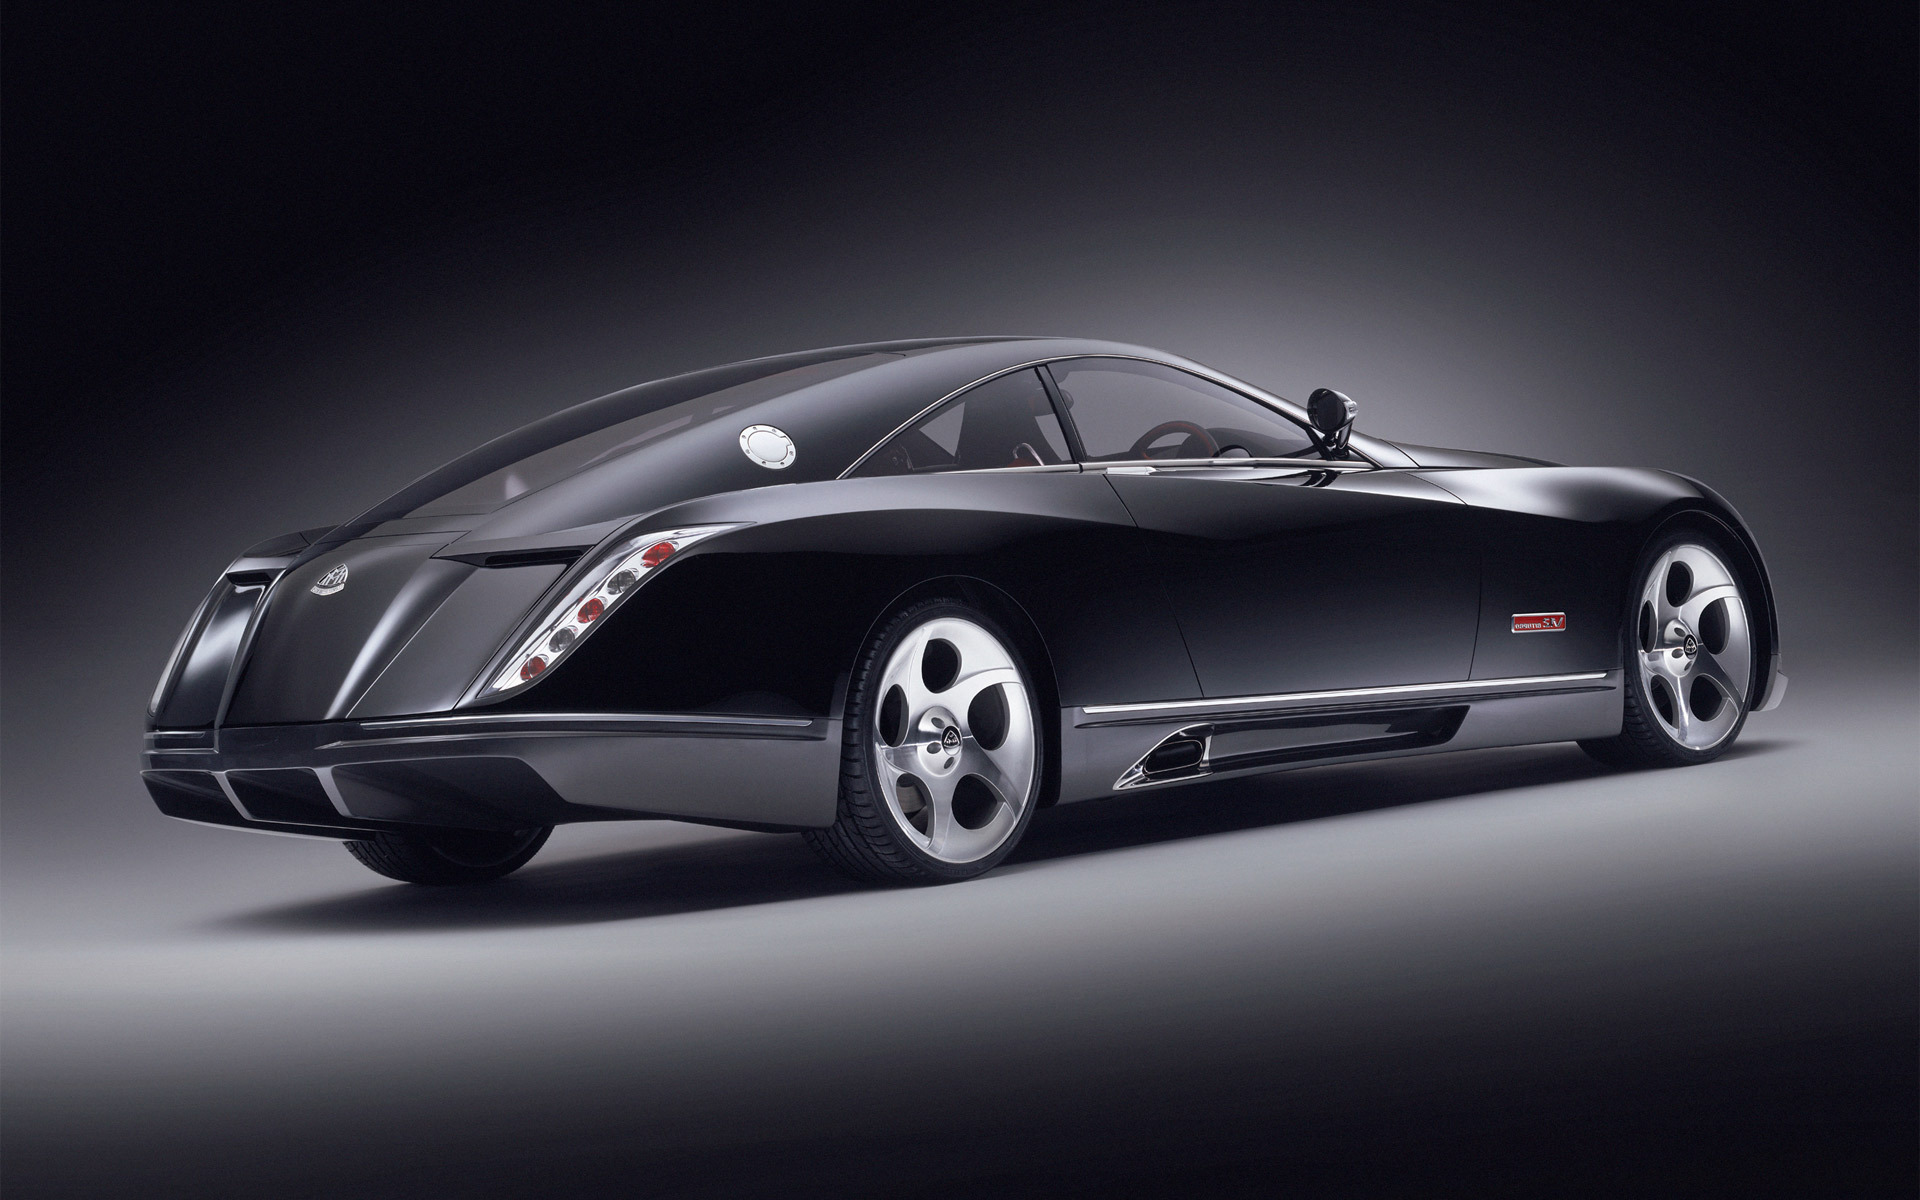 Best 41 Maybach Exelero Wallpaper on HipWallpaper Maybach 1920x1200